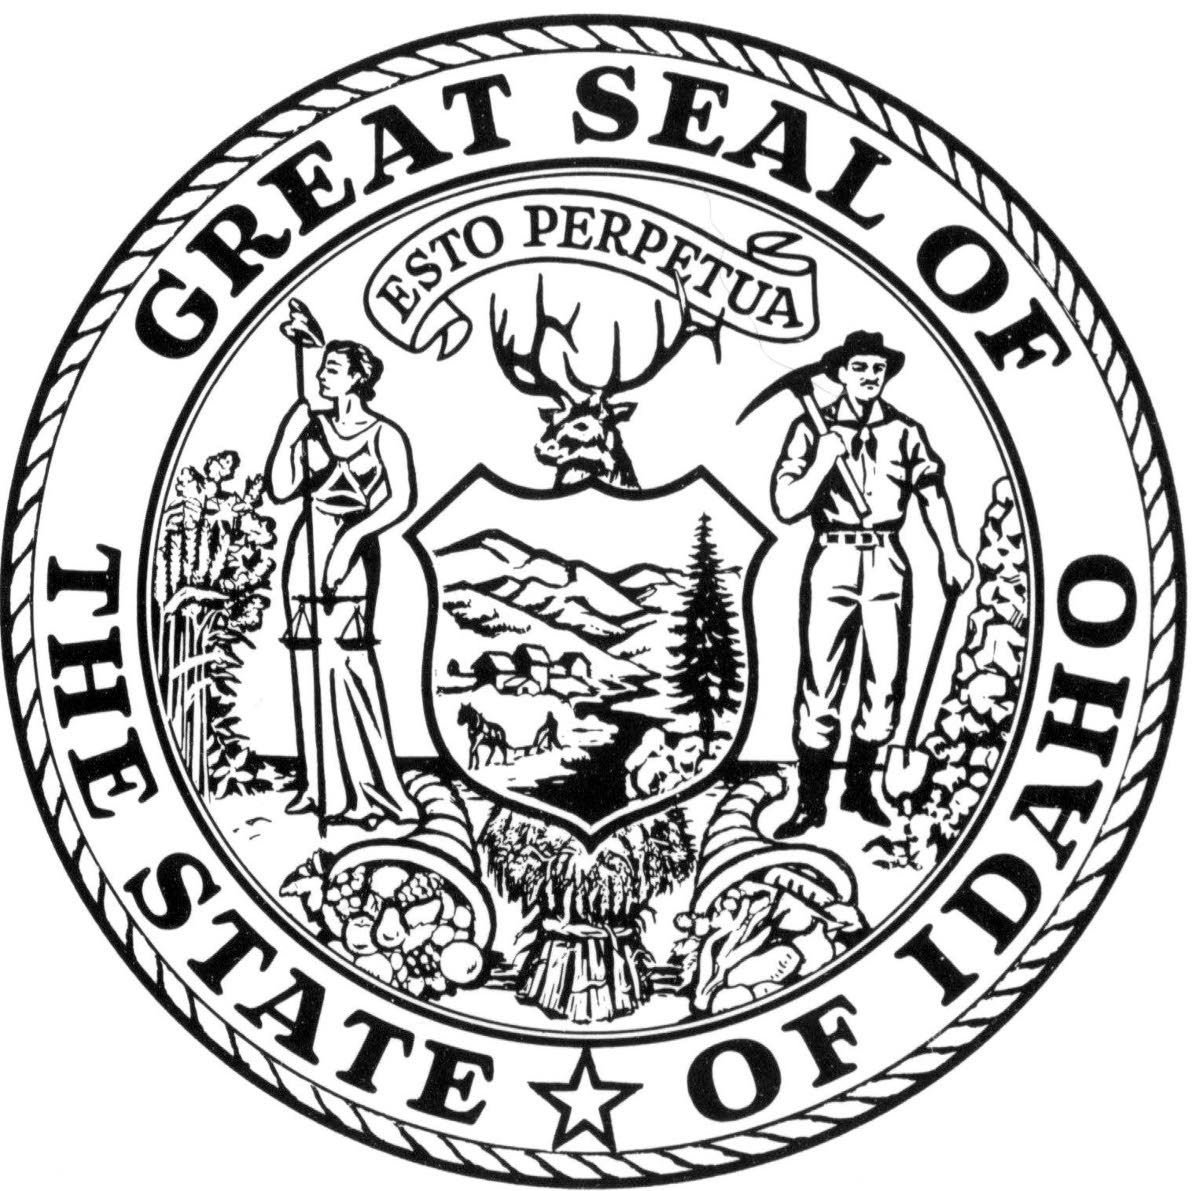 Woman Who Designed Idaho Seal Retains Interest In Public